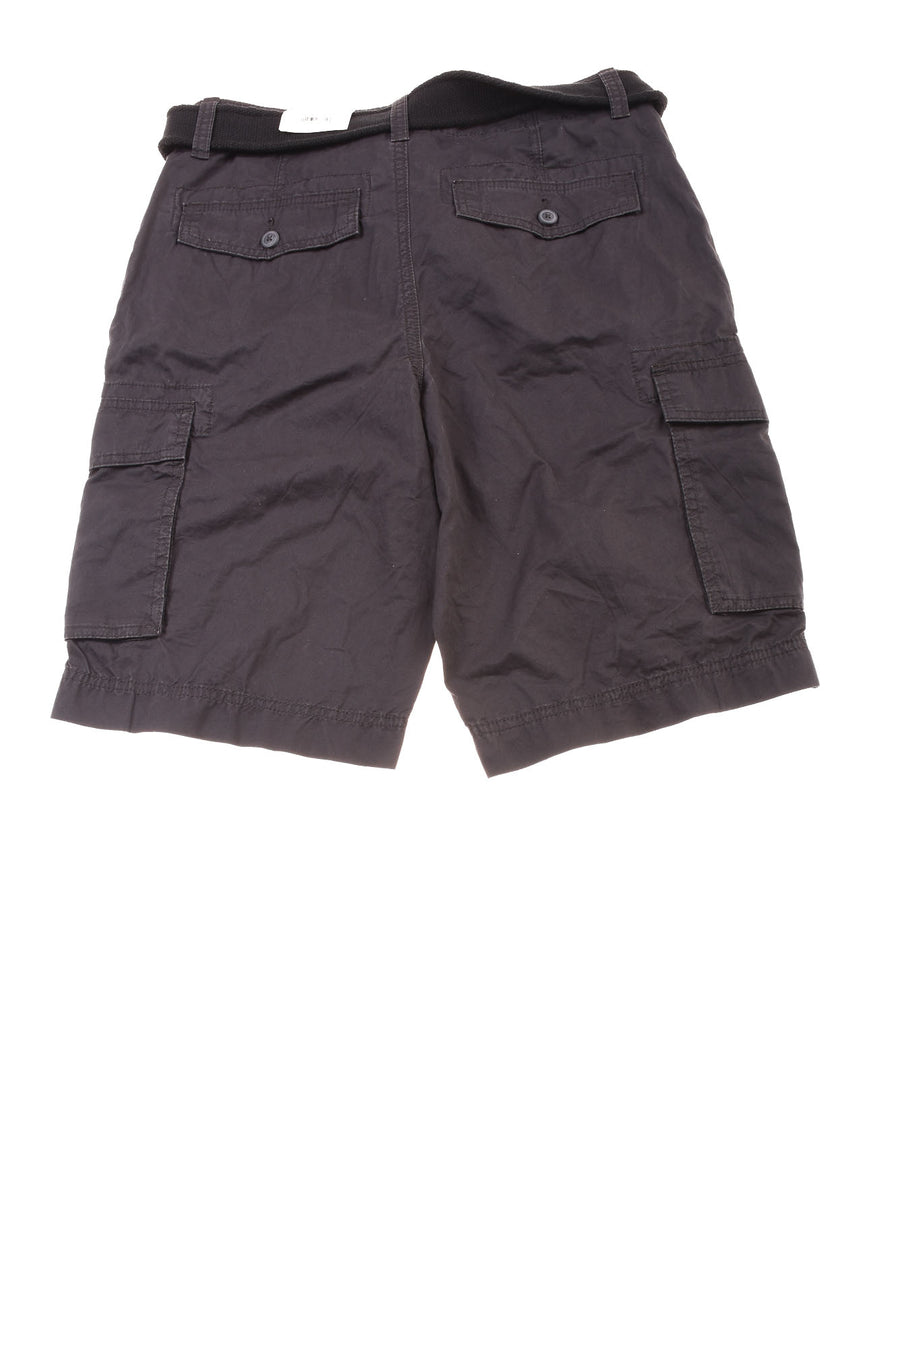 NEW Sonoma Men's Shorts 30 Black